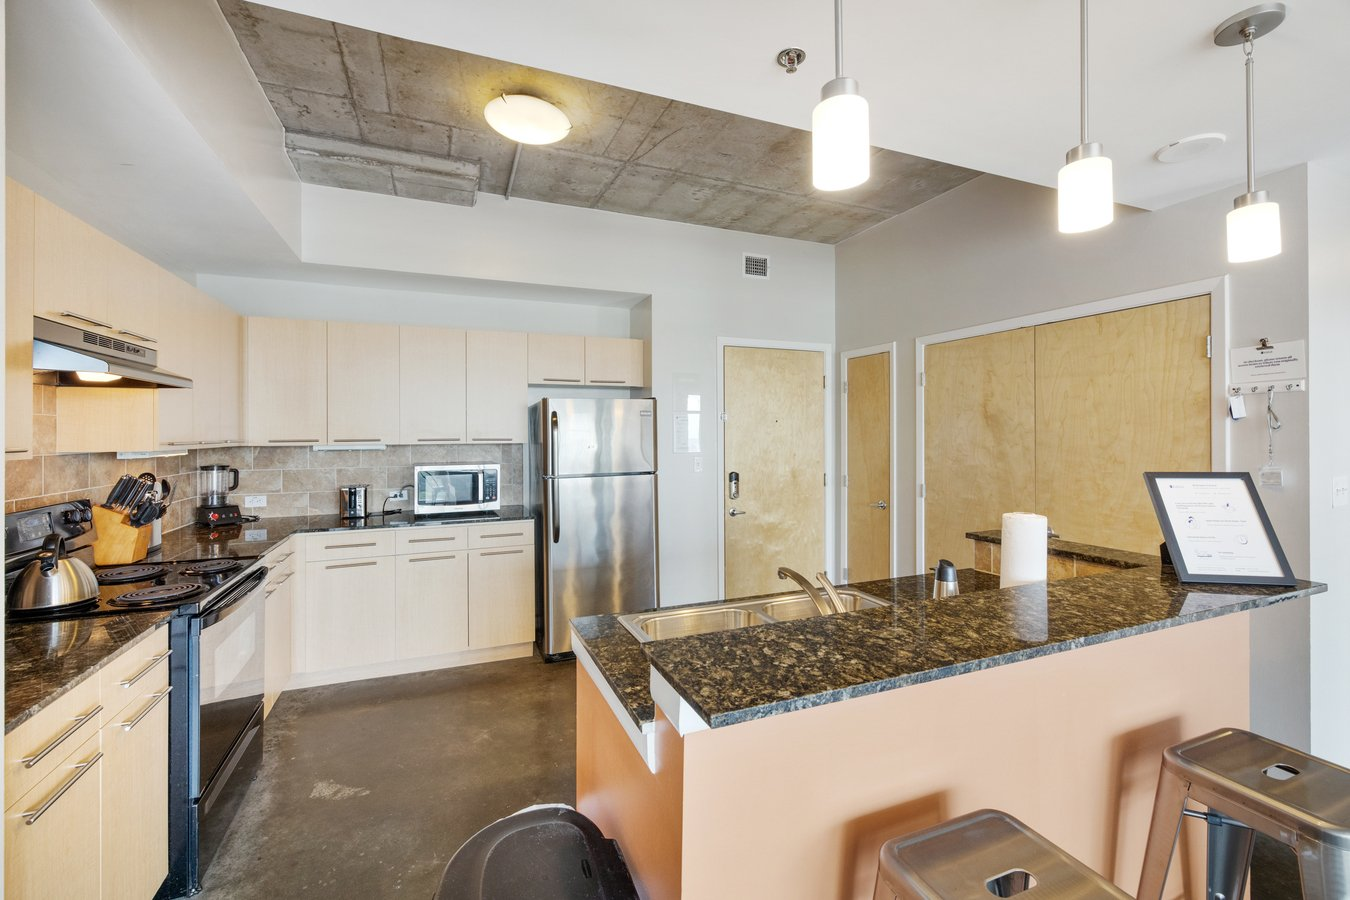 2 Bedrooms 2 Bathrooms Apartment for rent at Kasa Austin 2nd Street Furnished Apartments in Austin, TX